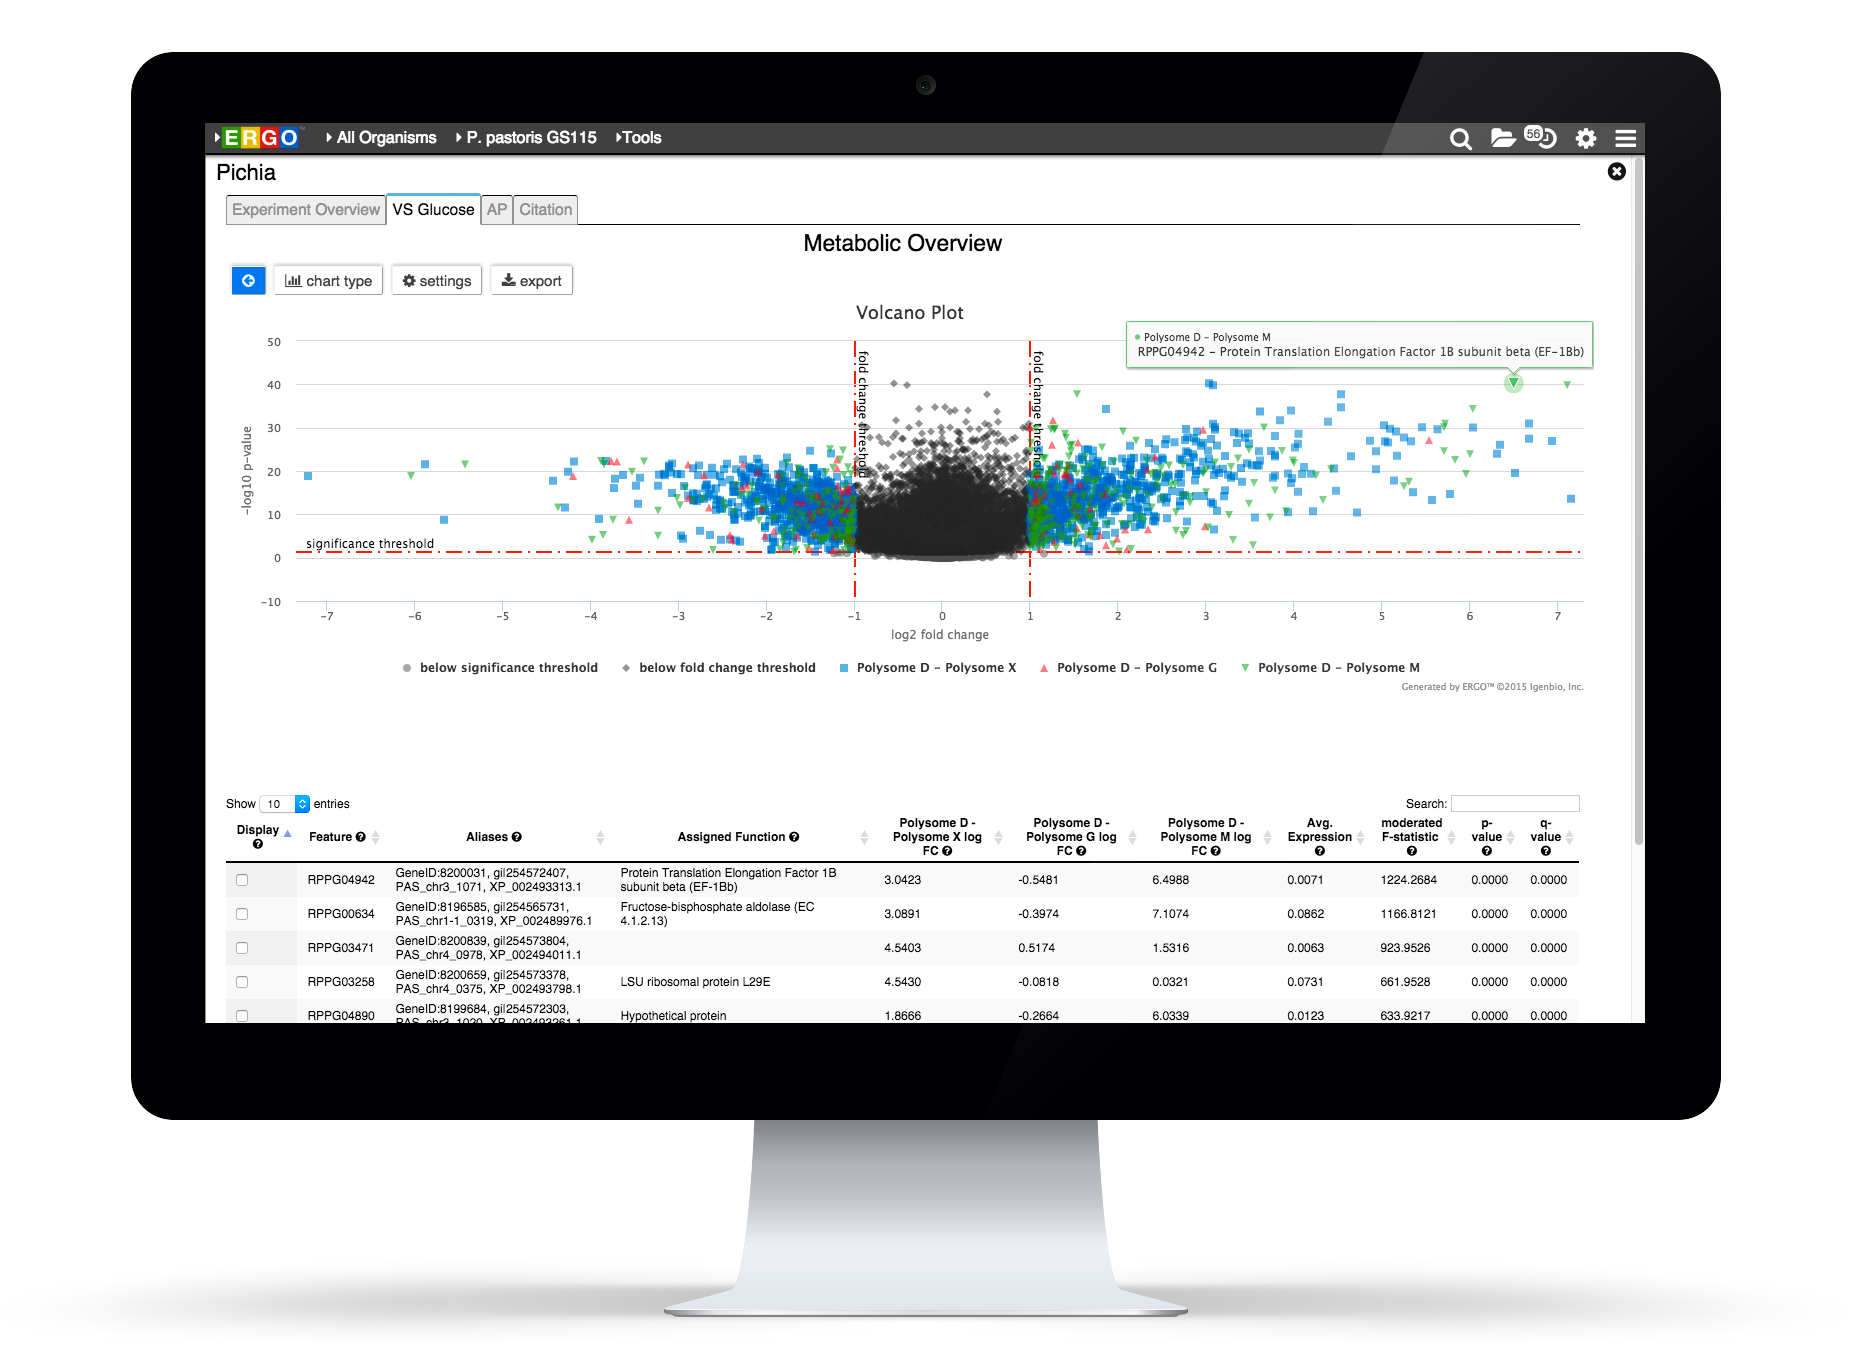 Learn more about RNA-Seq Analytics in ERGO 2.0.